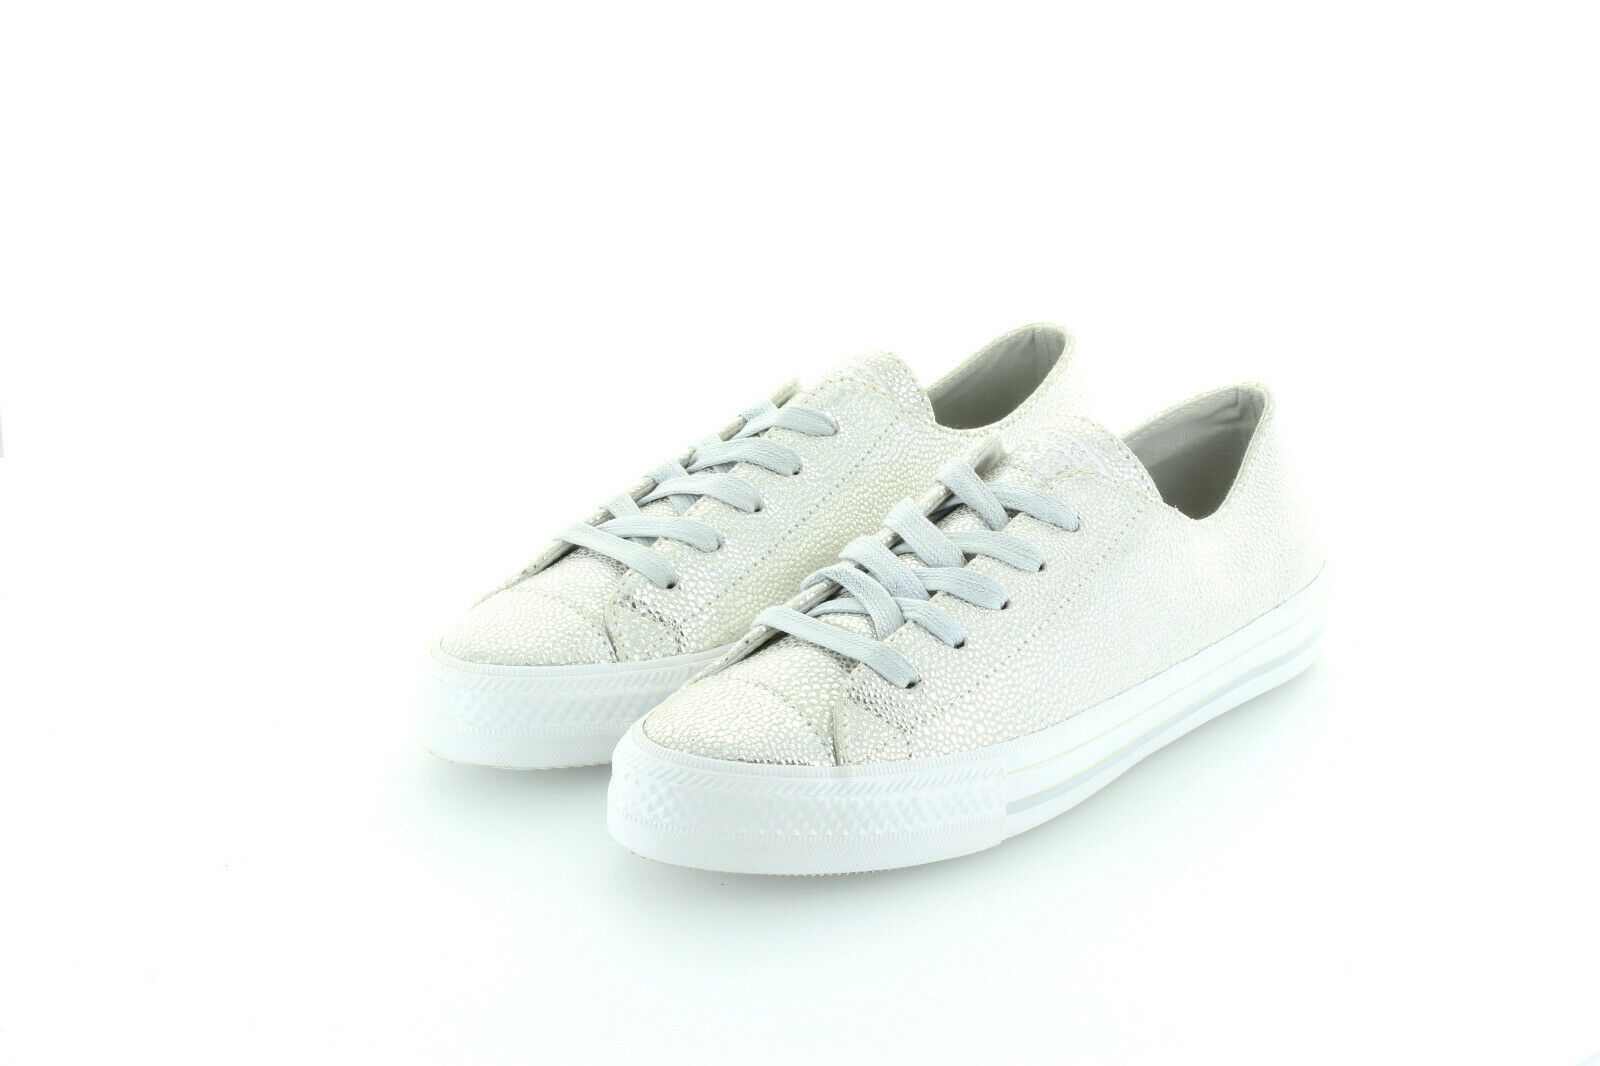 Converse All Star Chuck Taylor Ox Crusty argent Gemma Leather Taille 37,5 38